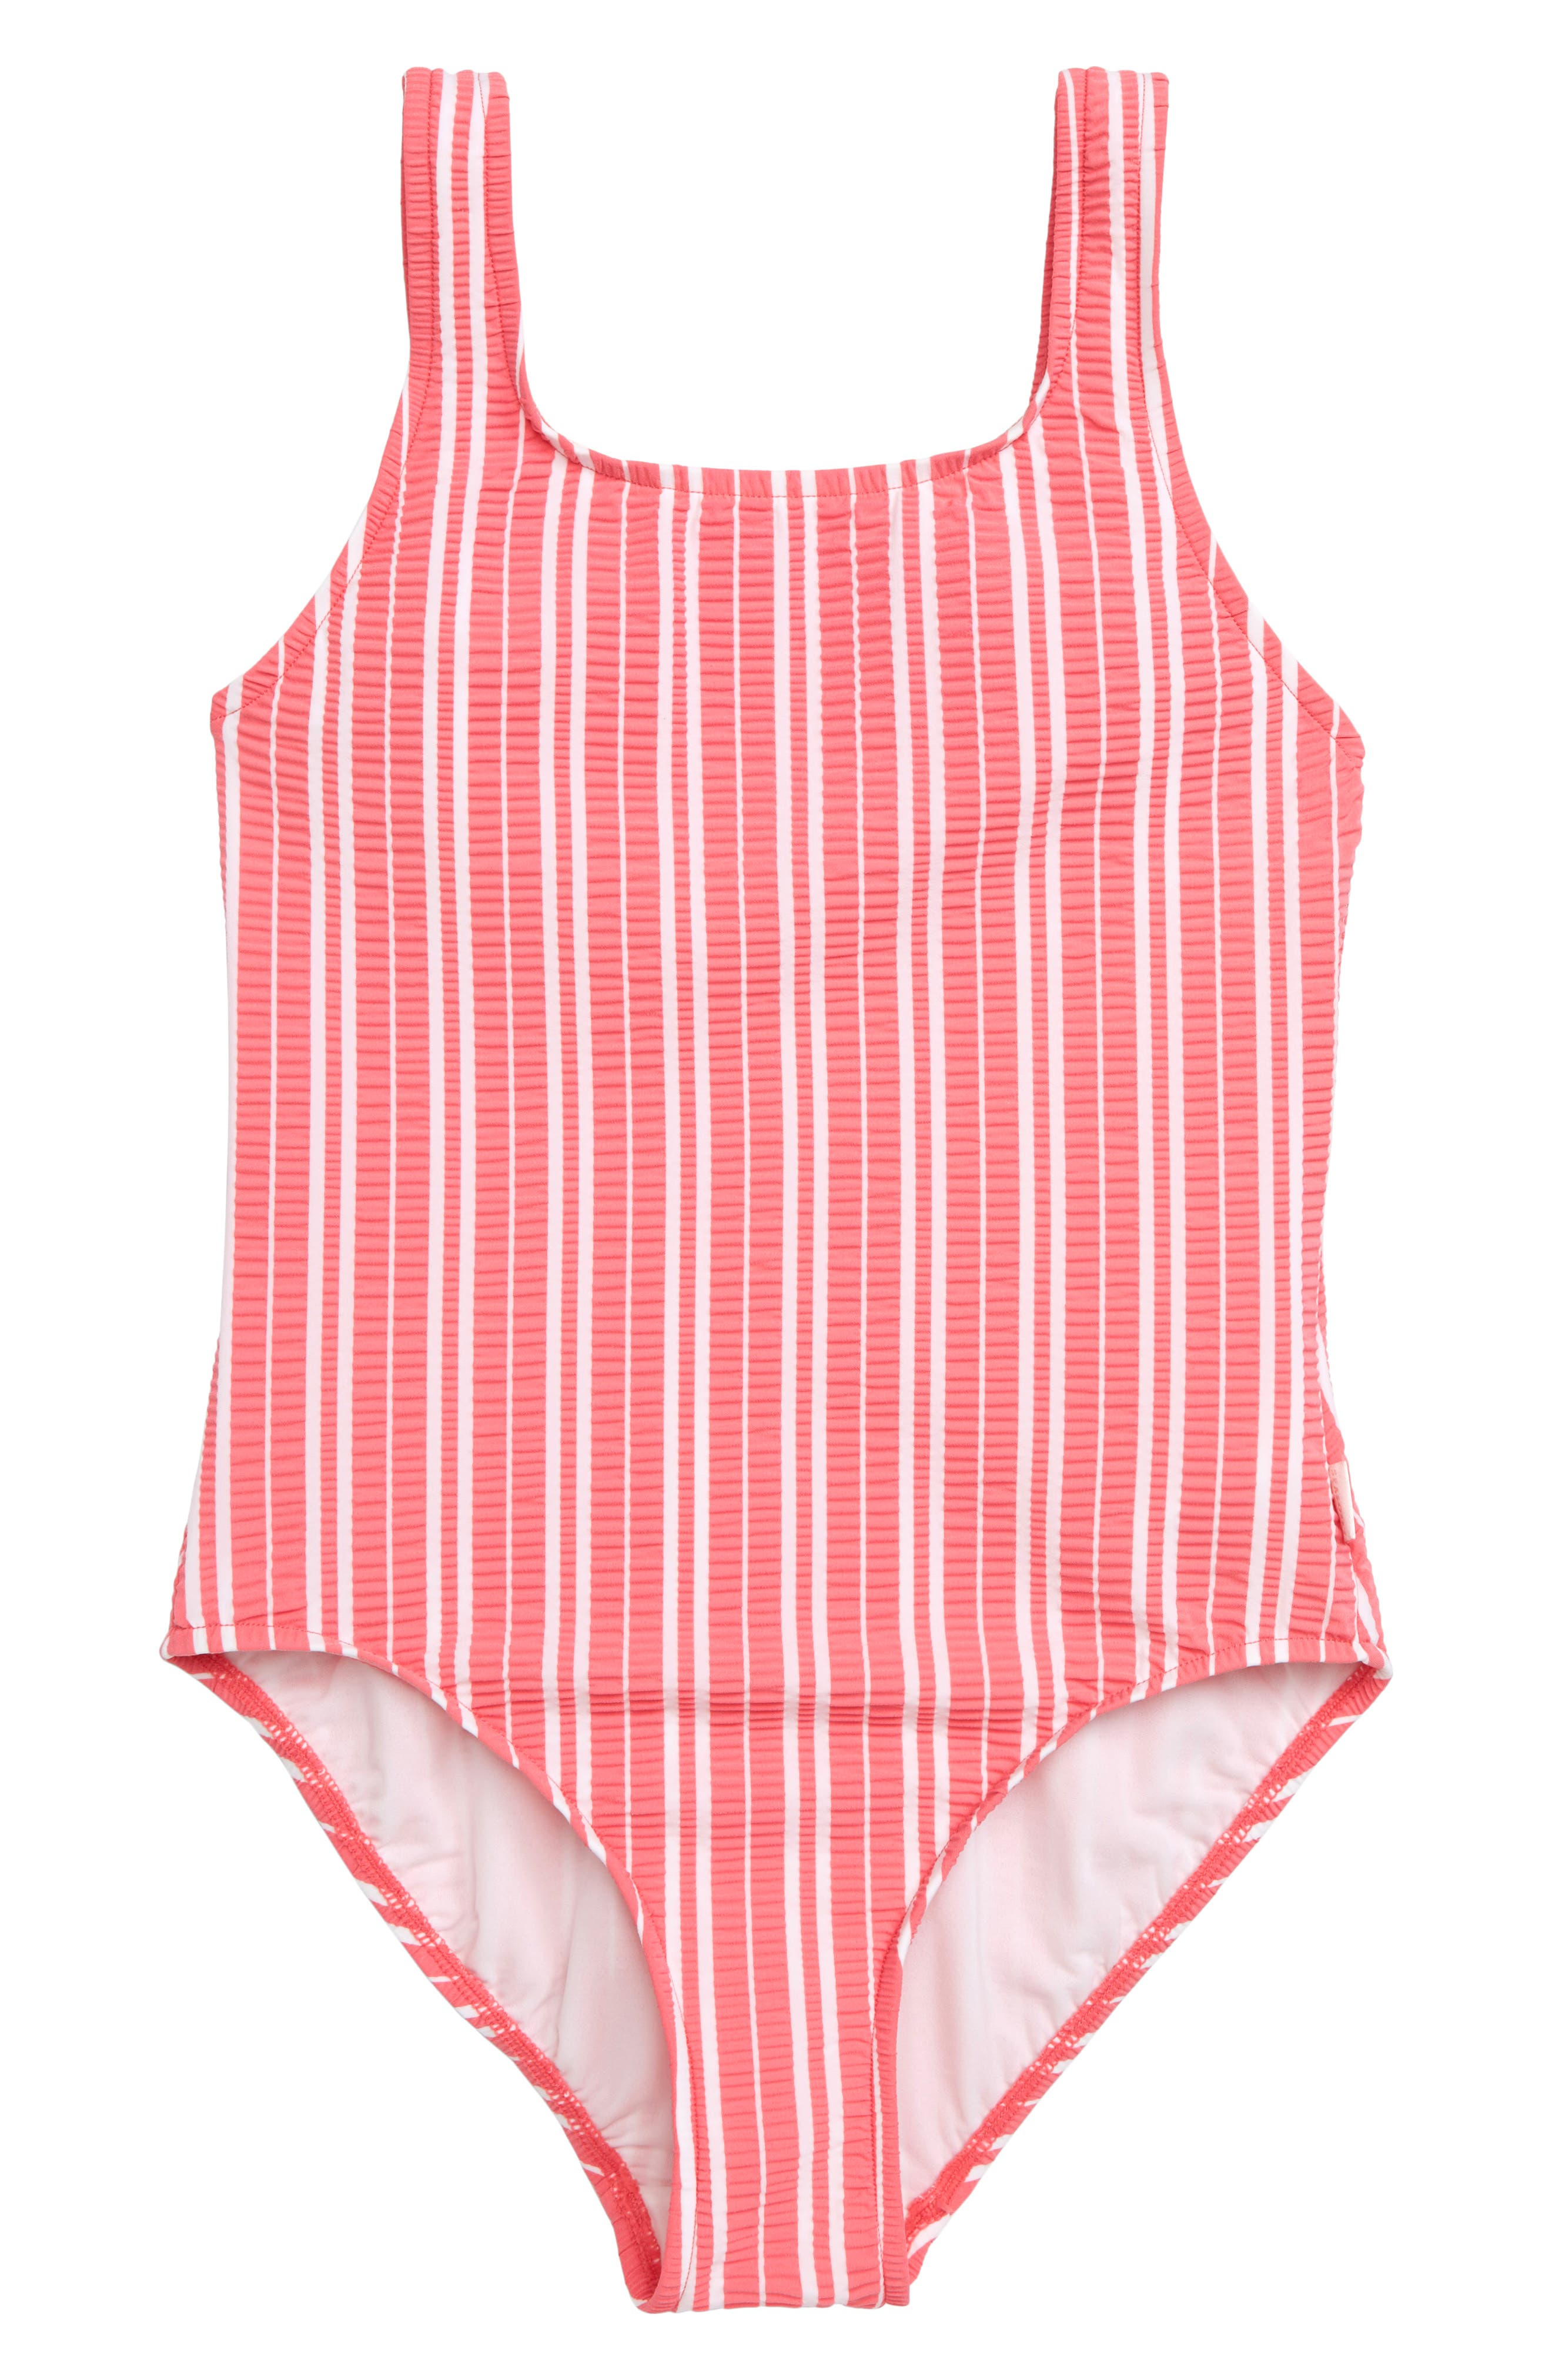 Tropical Vibes '80s One-Piece Swimsuit,                         Main,                         color, RED/ WHITE